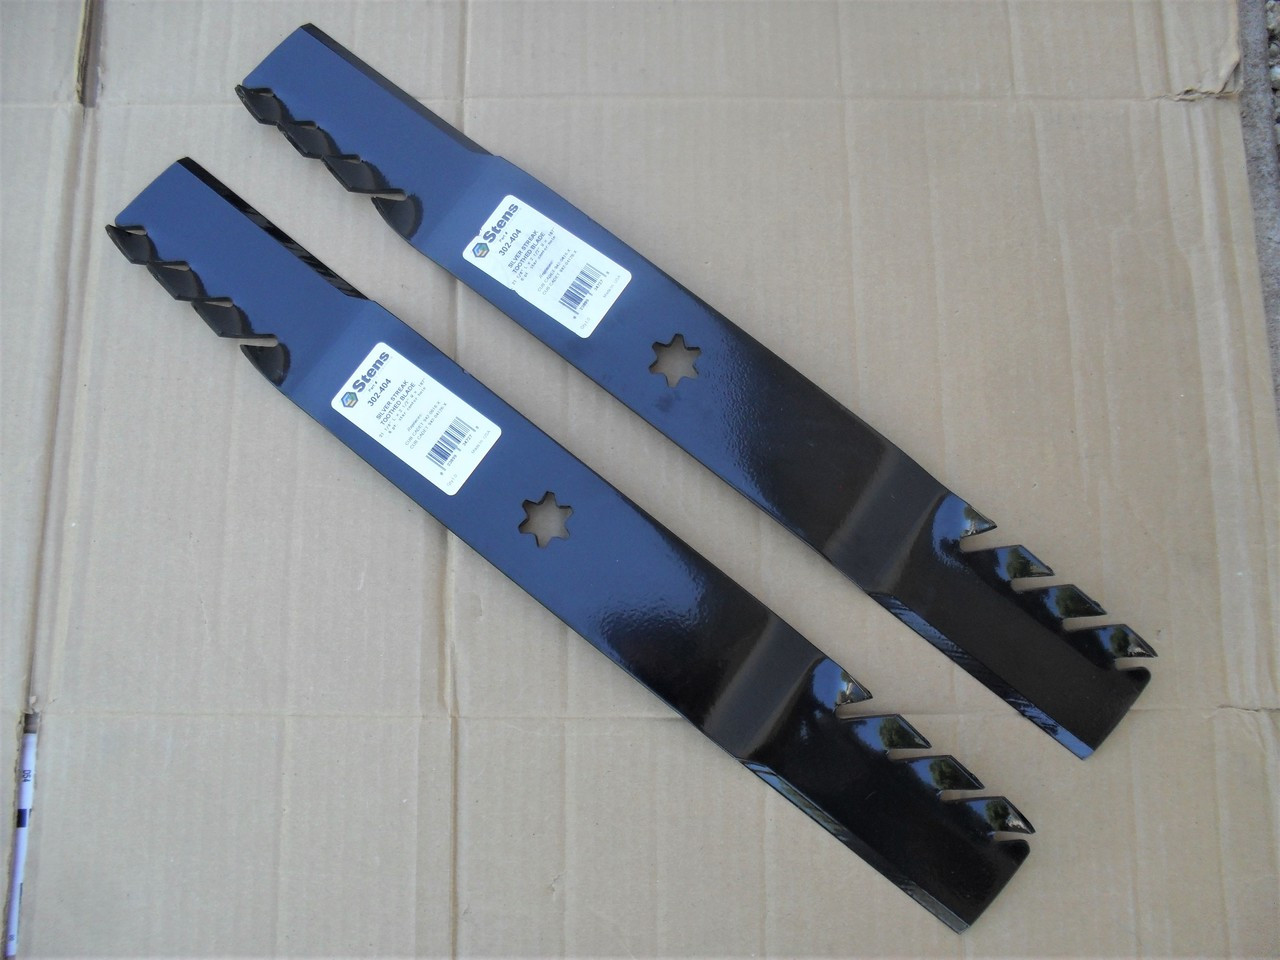 "Mulching Blades for Toro LX420, LX423, LX425, LX426, LX427, 42"" Cut 1120315, 98022, 112-0315, Made In USA, Toothed mulcher"